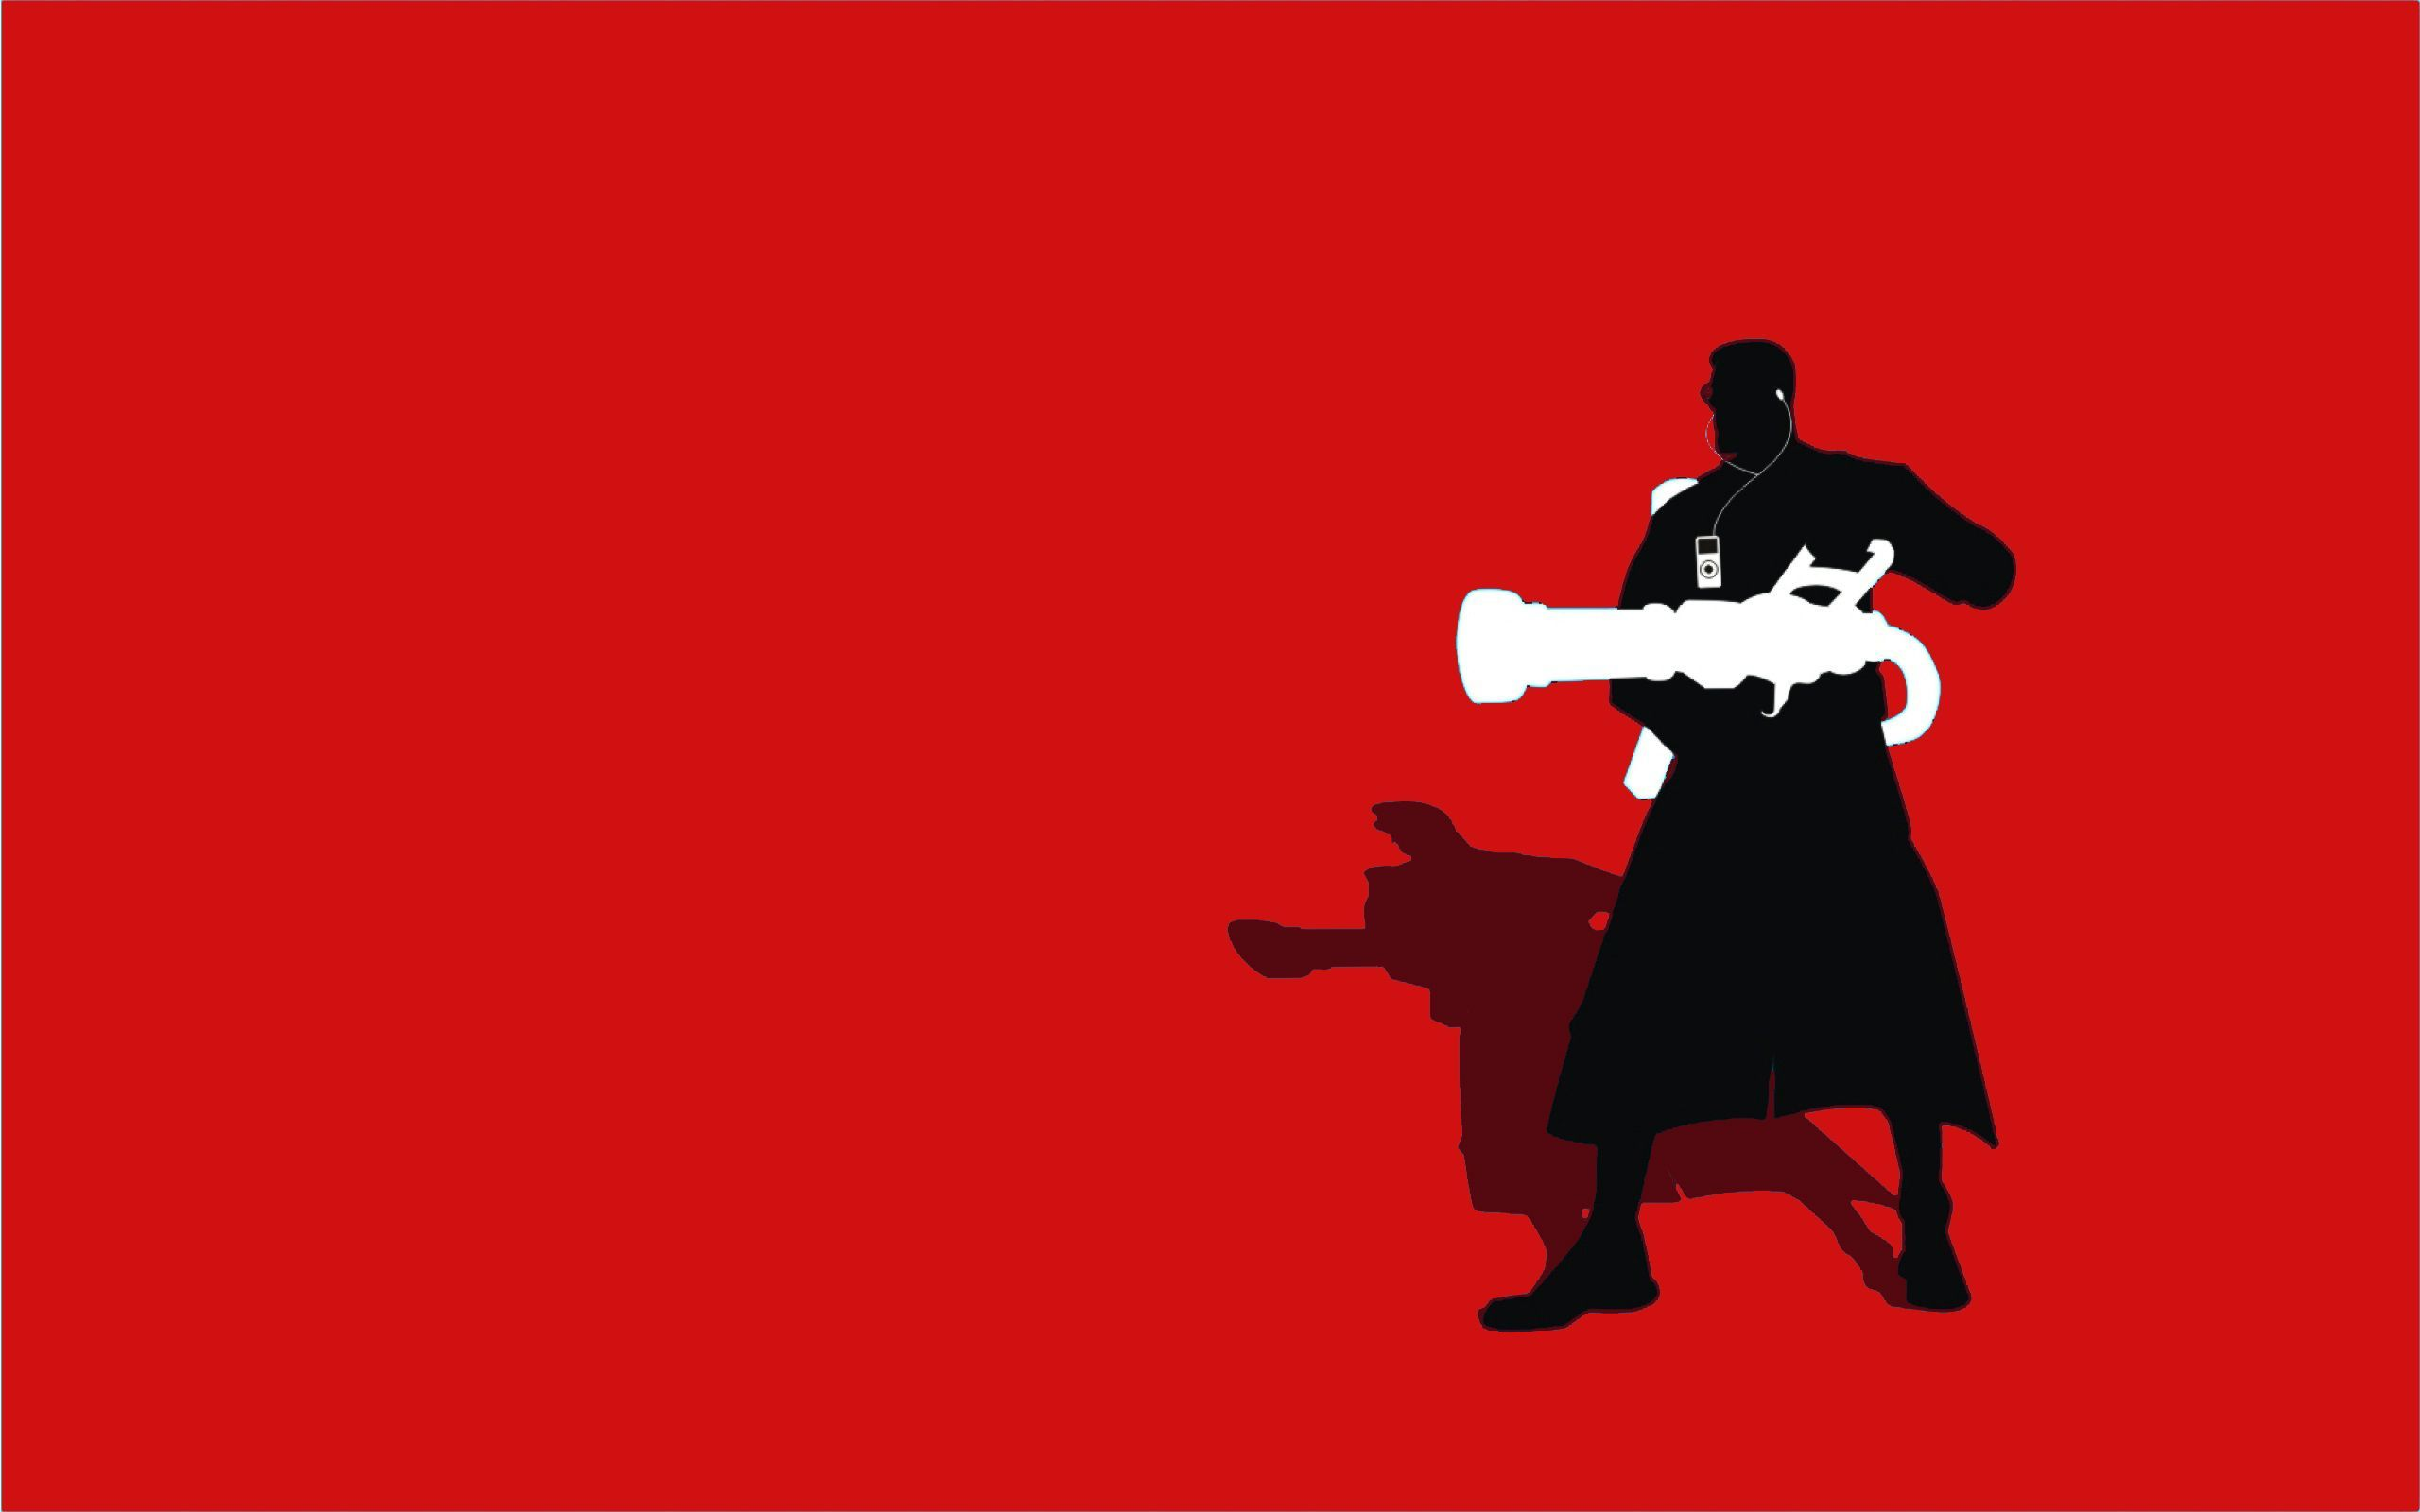 TF2 Medic Wallpapers   Top TF2 Medic Backgrounds 2560x1600